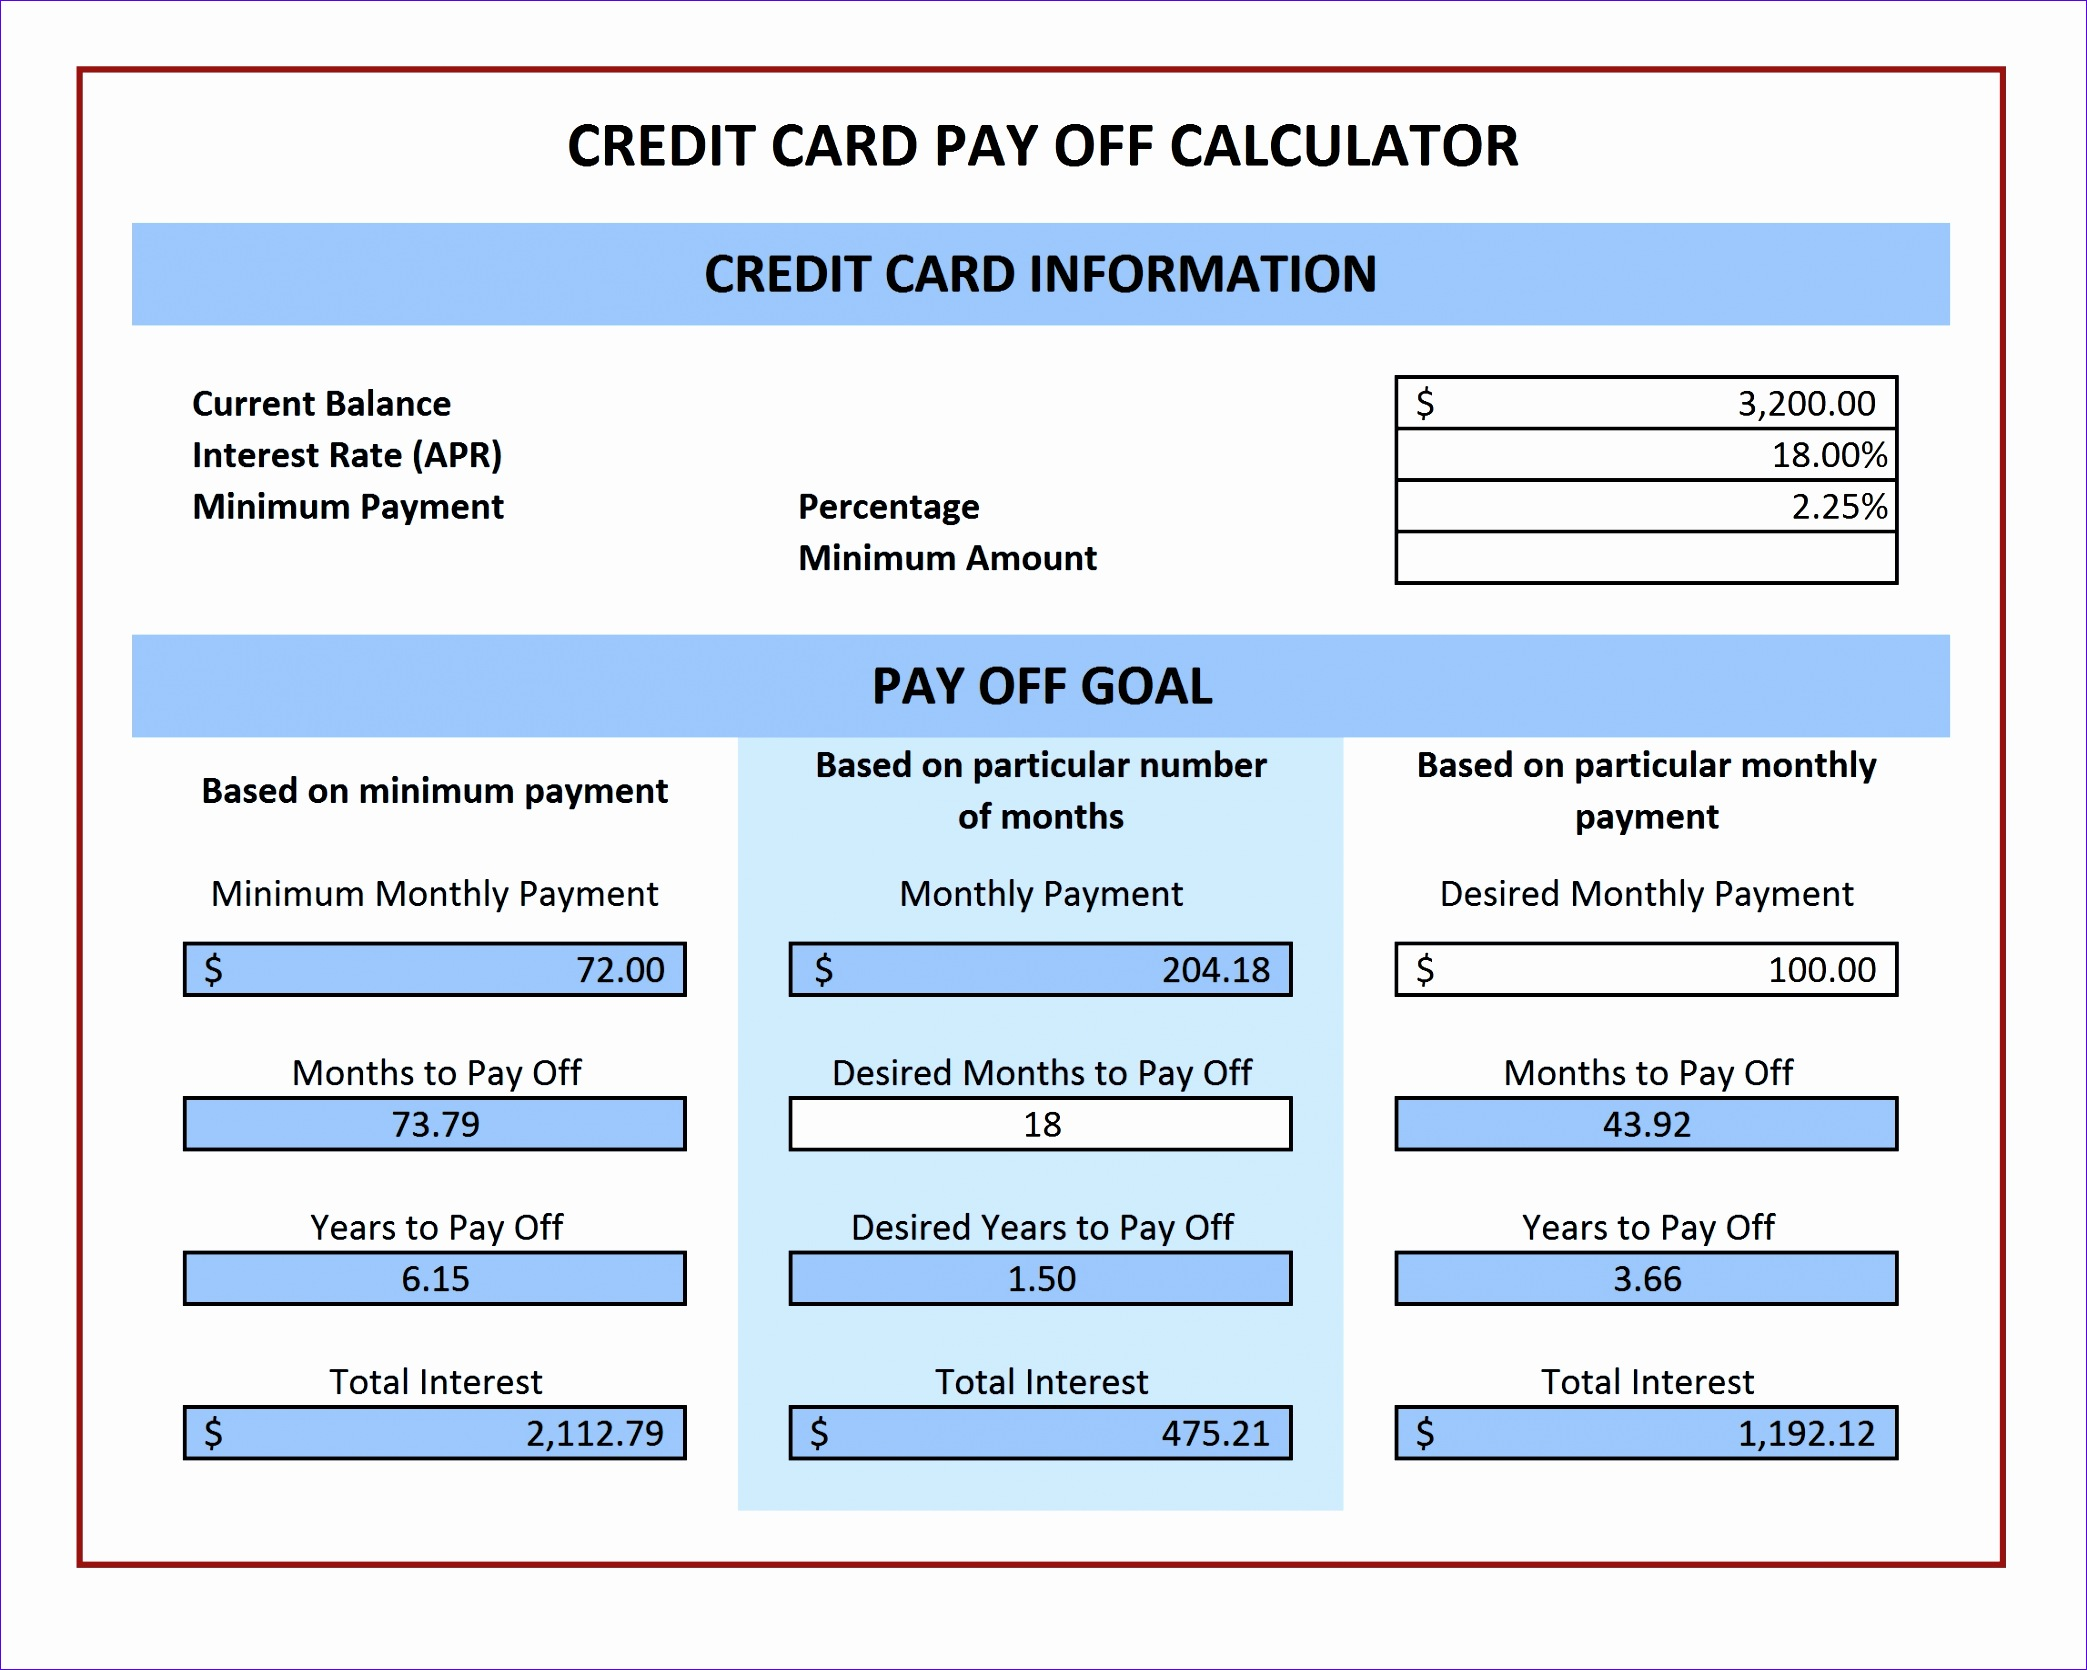 Credit Card Pay f Calculator